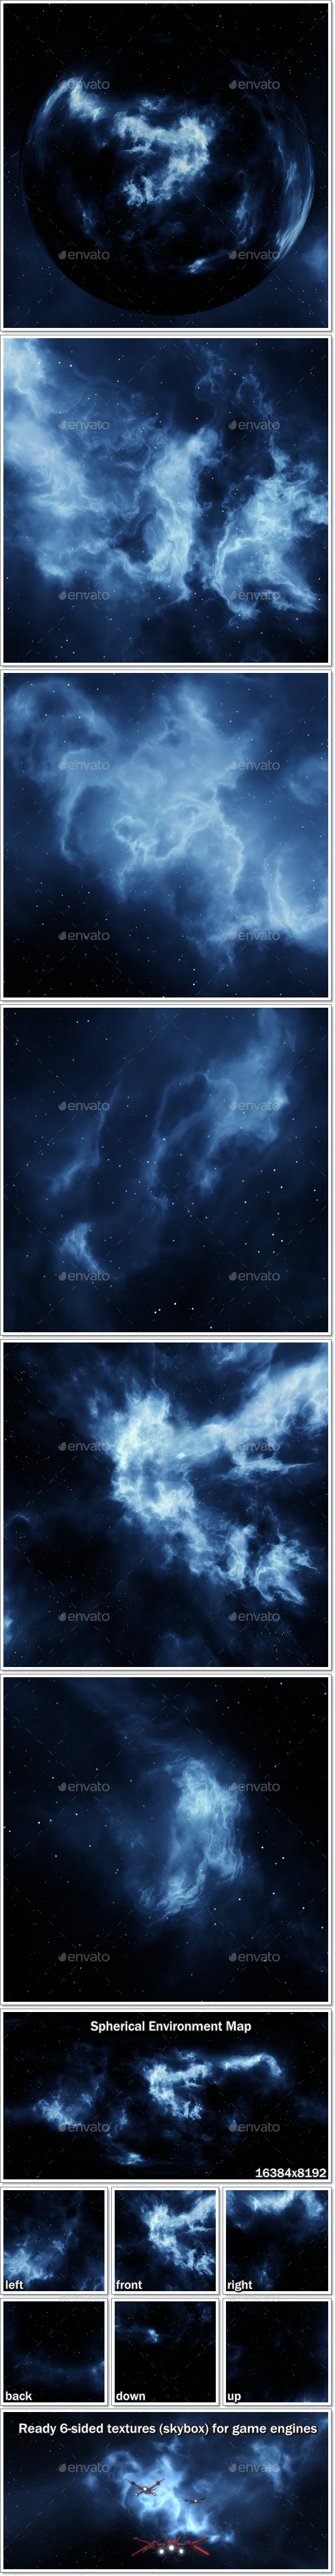 Skybox CG Textures & 3D Models from 3DOcean